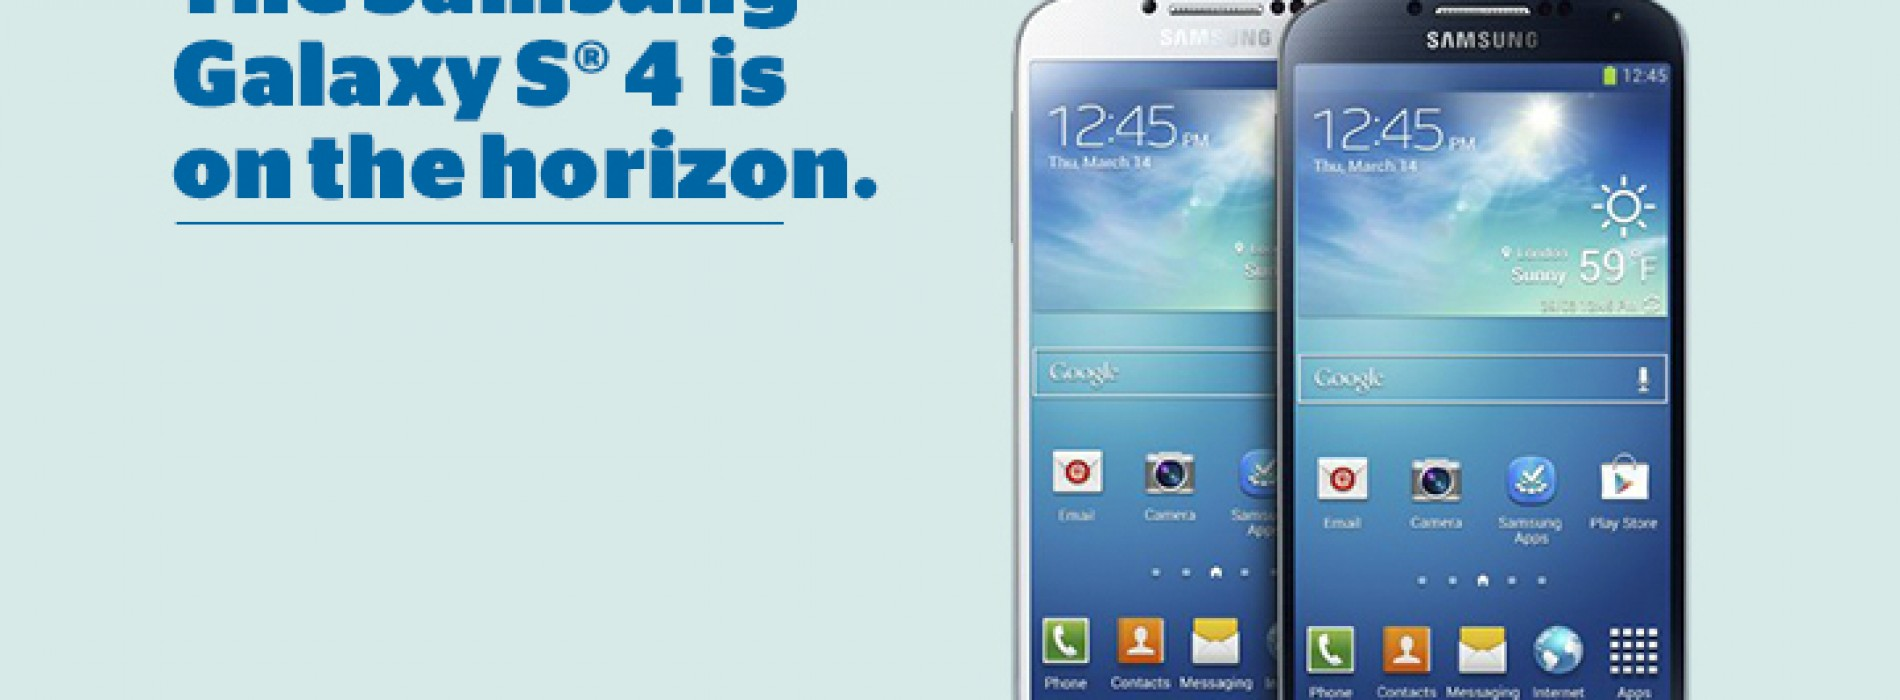 U.S. Cellular sets Samsung Galaxy S4 pre-order date for April 16